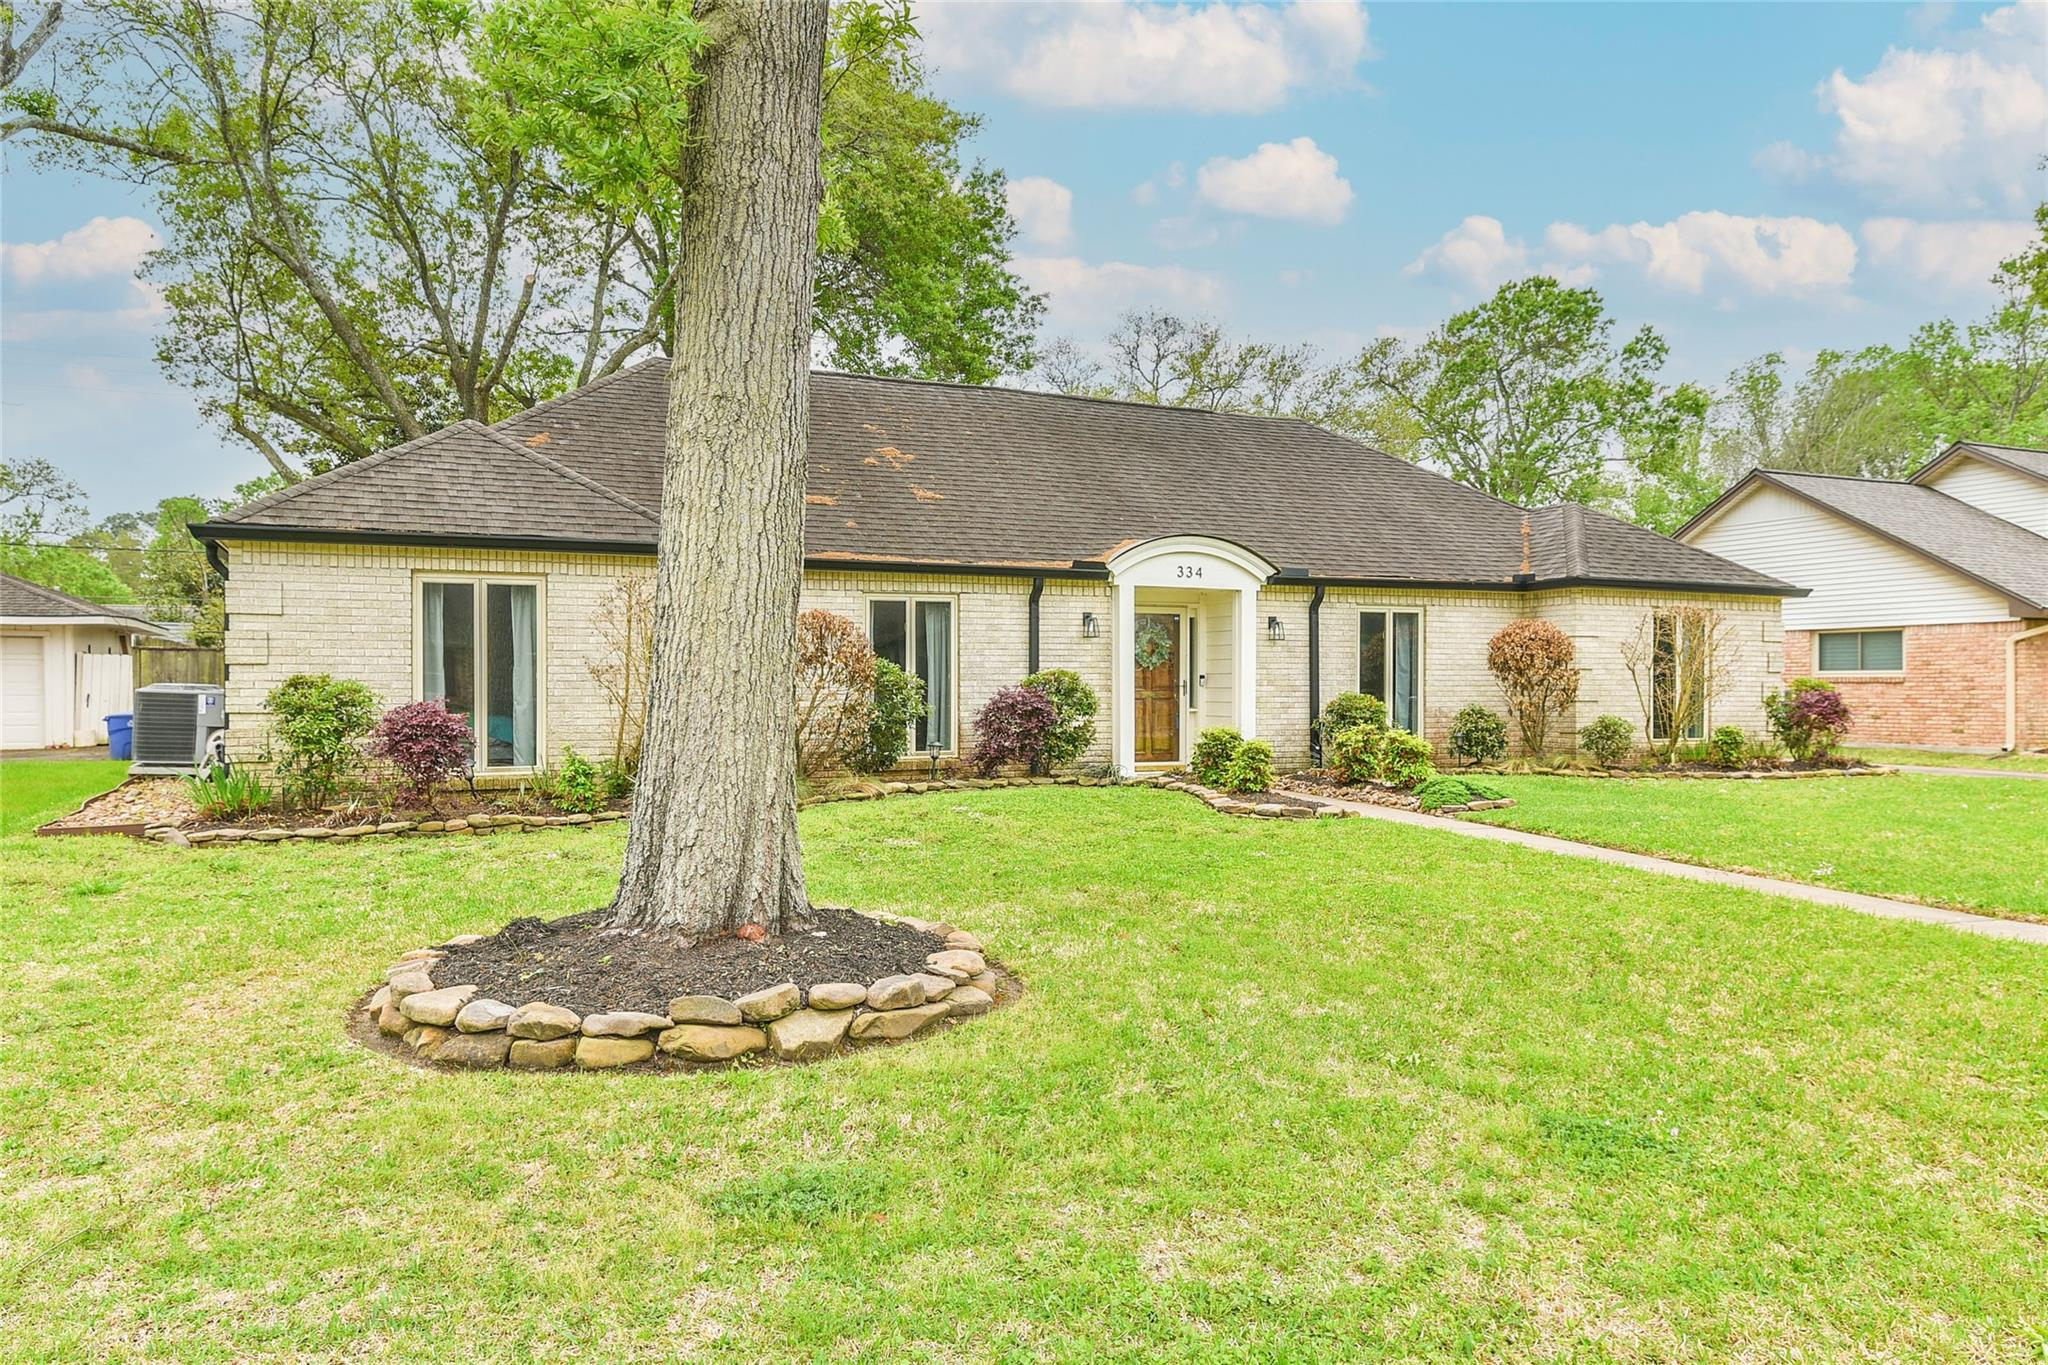 334 Bayou View Drive Property Photo - El Lago, TX real estate listing